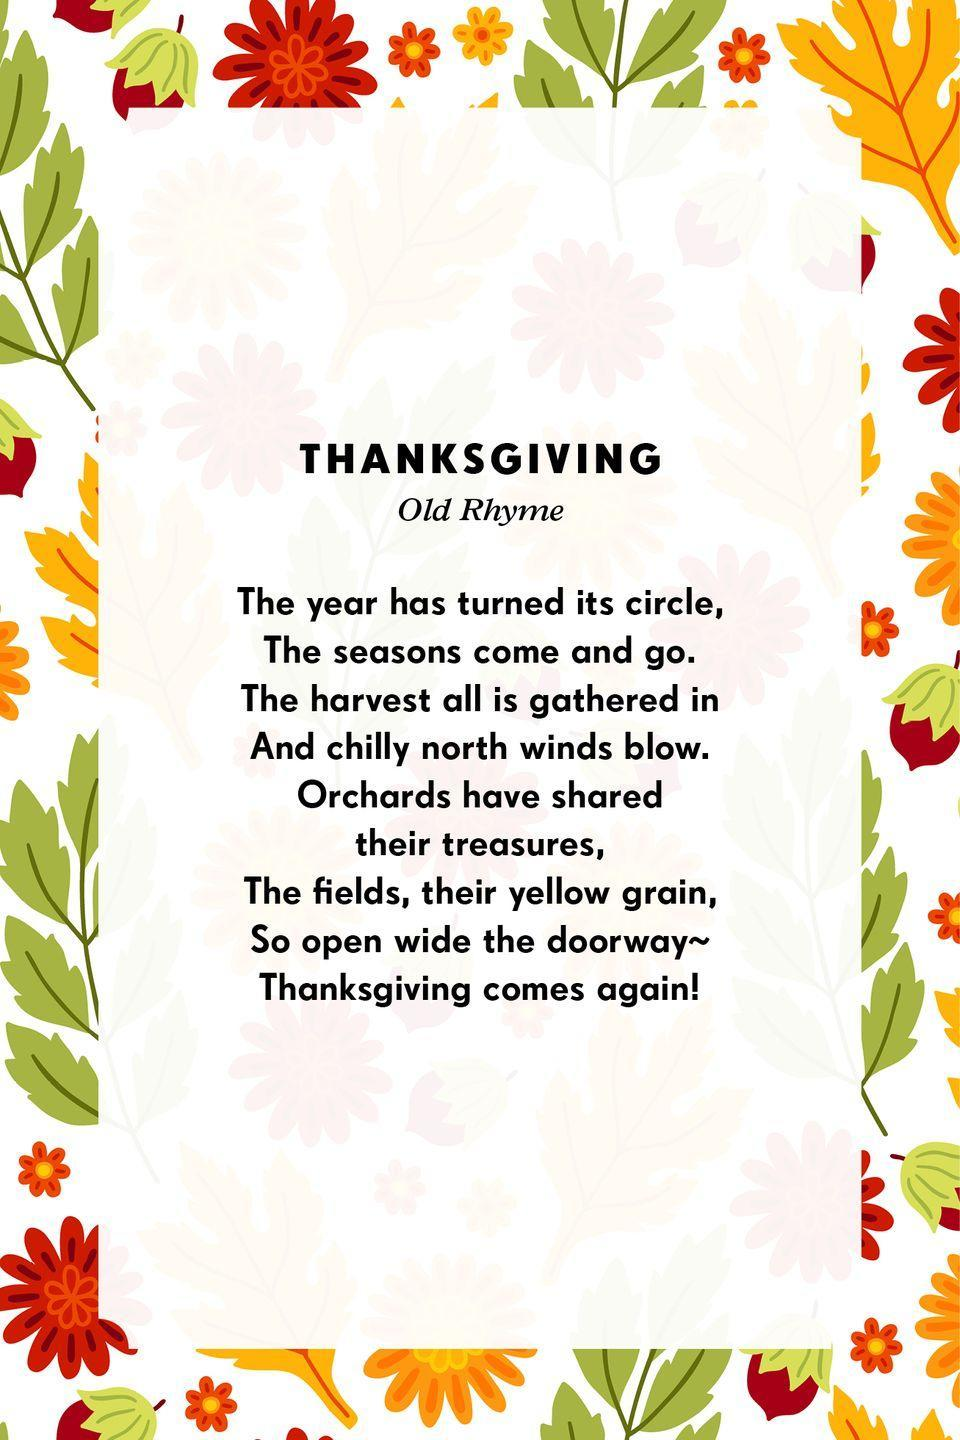 <p><strong>Thanksgiving</strong></p><p>The year has turned its circle,<br>The seasons come and go.<br>The harvest all is gathered in<br>And chilly north winds blow.<br>Orchards have shared their treasures,<br>The fields, their yellow grain,<br>So open wide the doorway~<br>Thanksgiving comes again!</p>